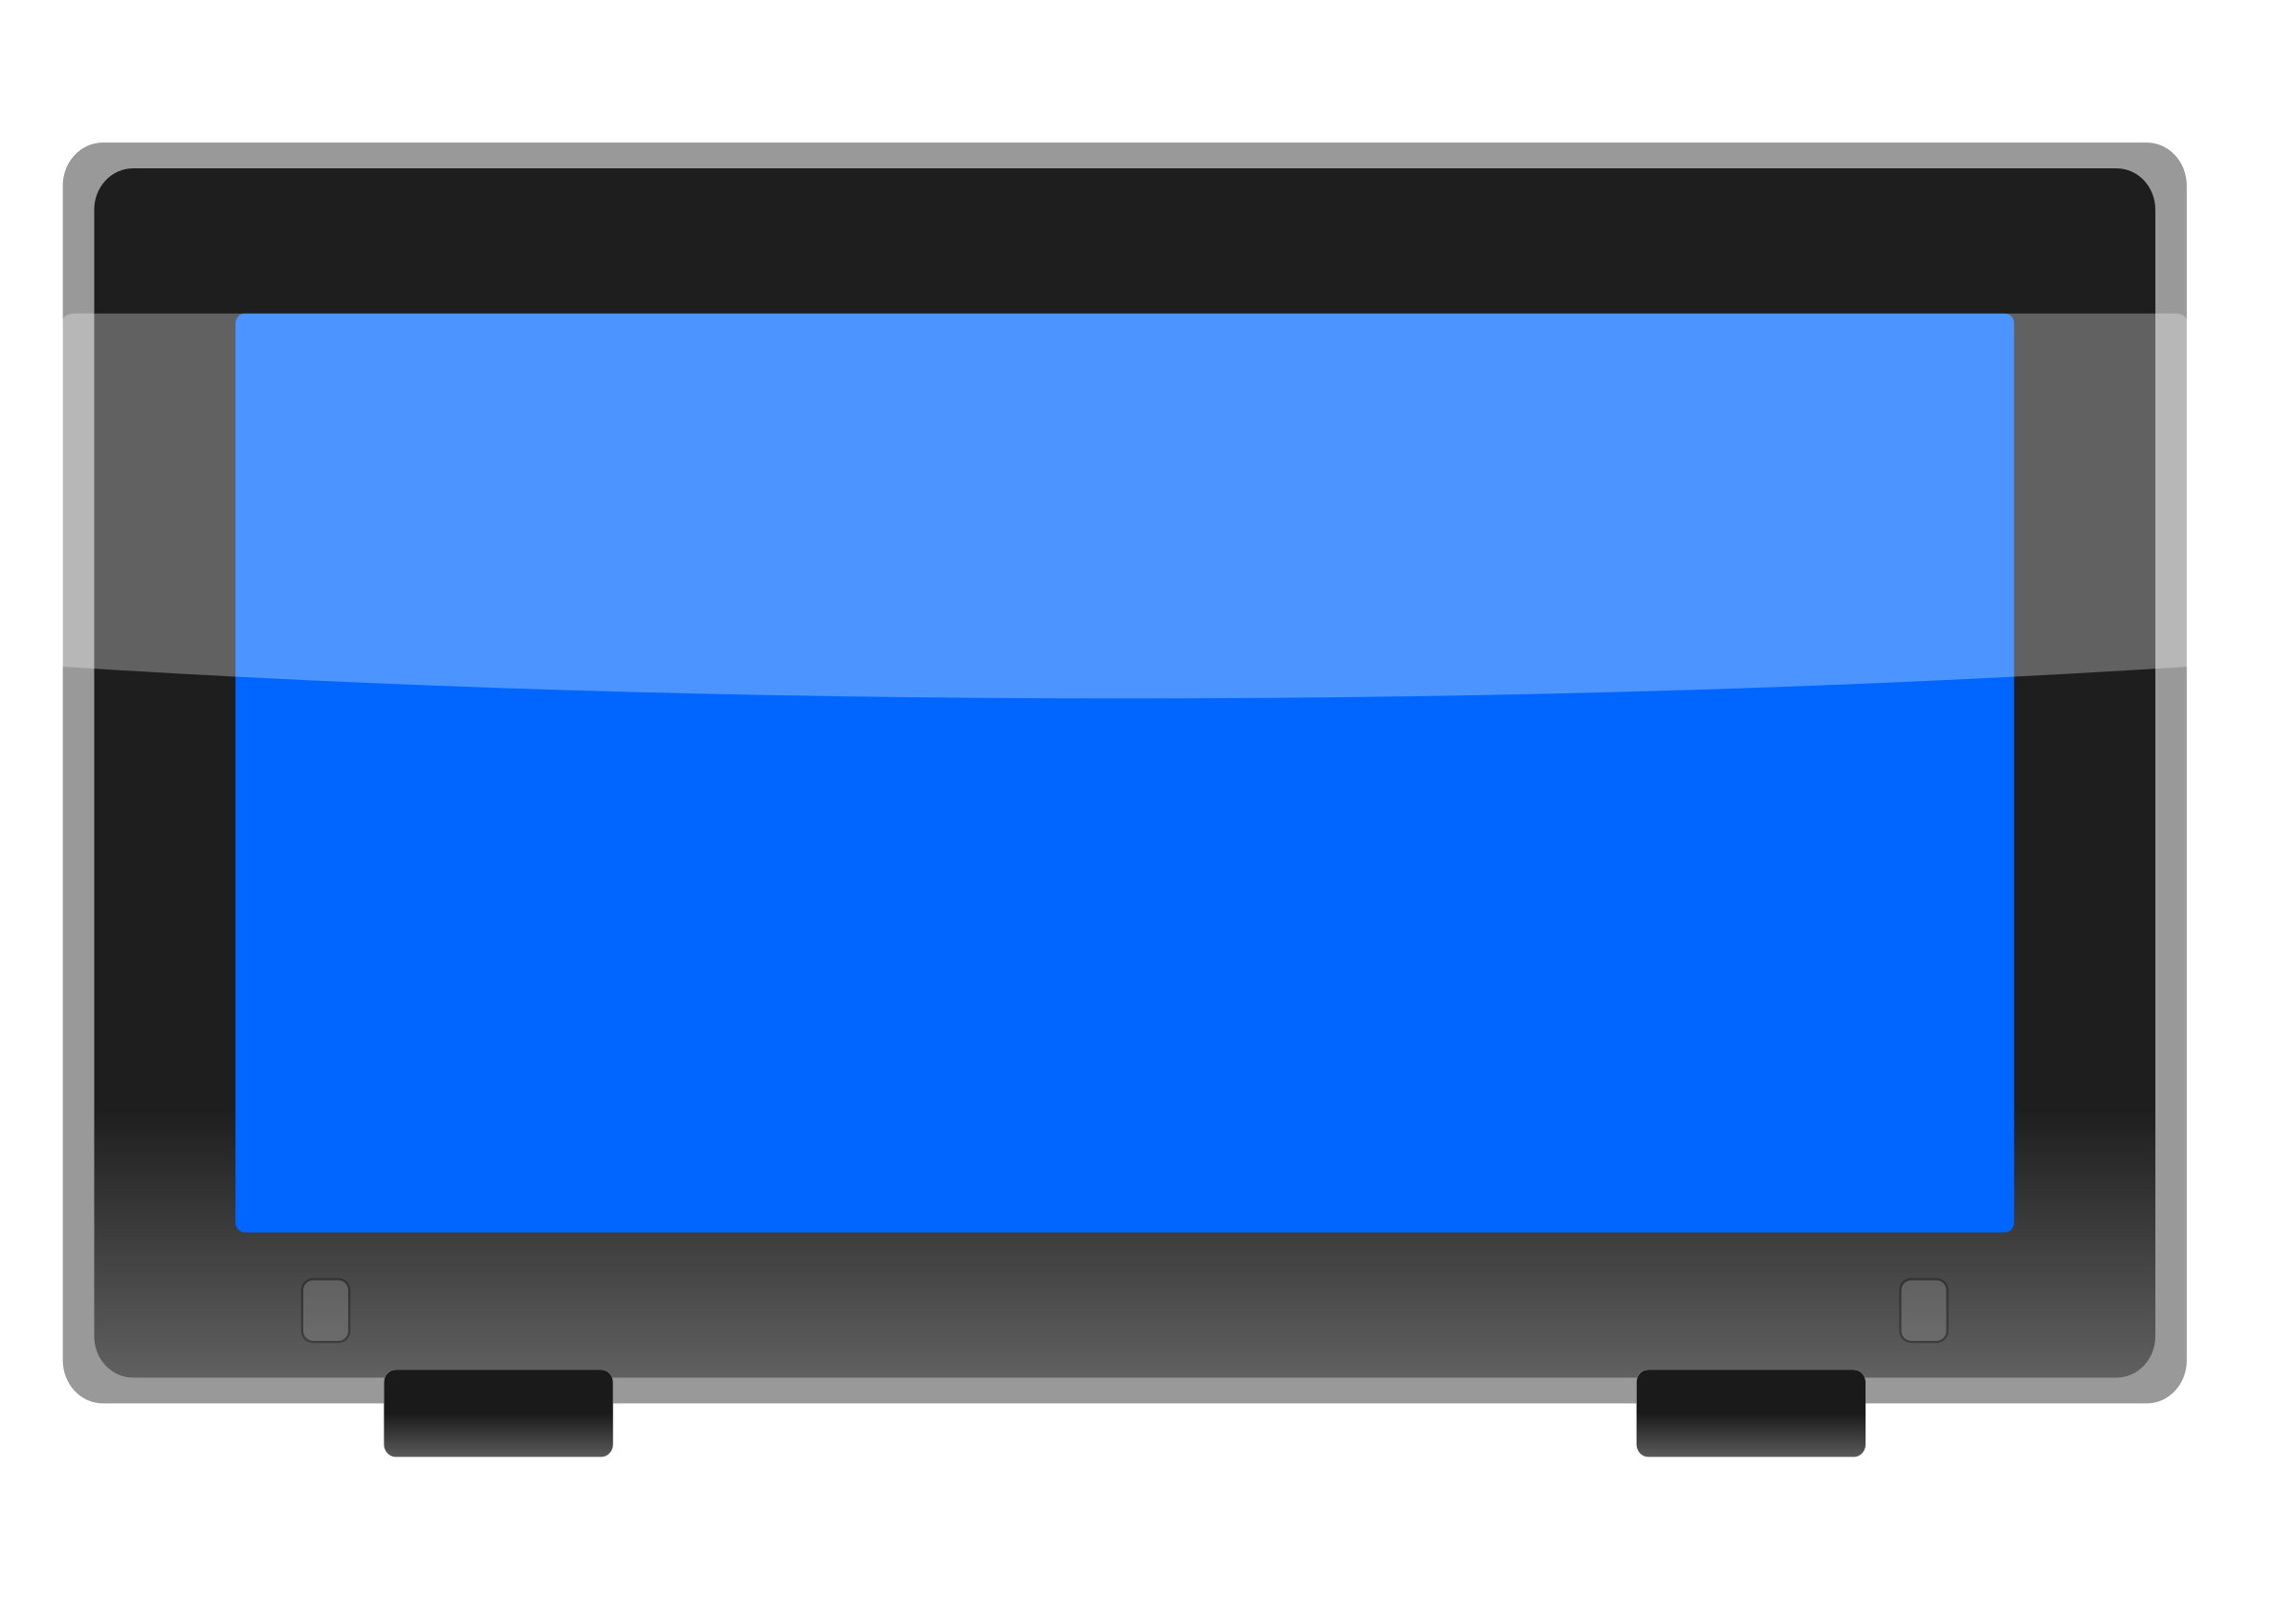 LCD Widescreen Monitor 1 by jilagan